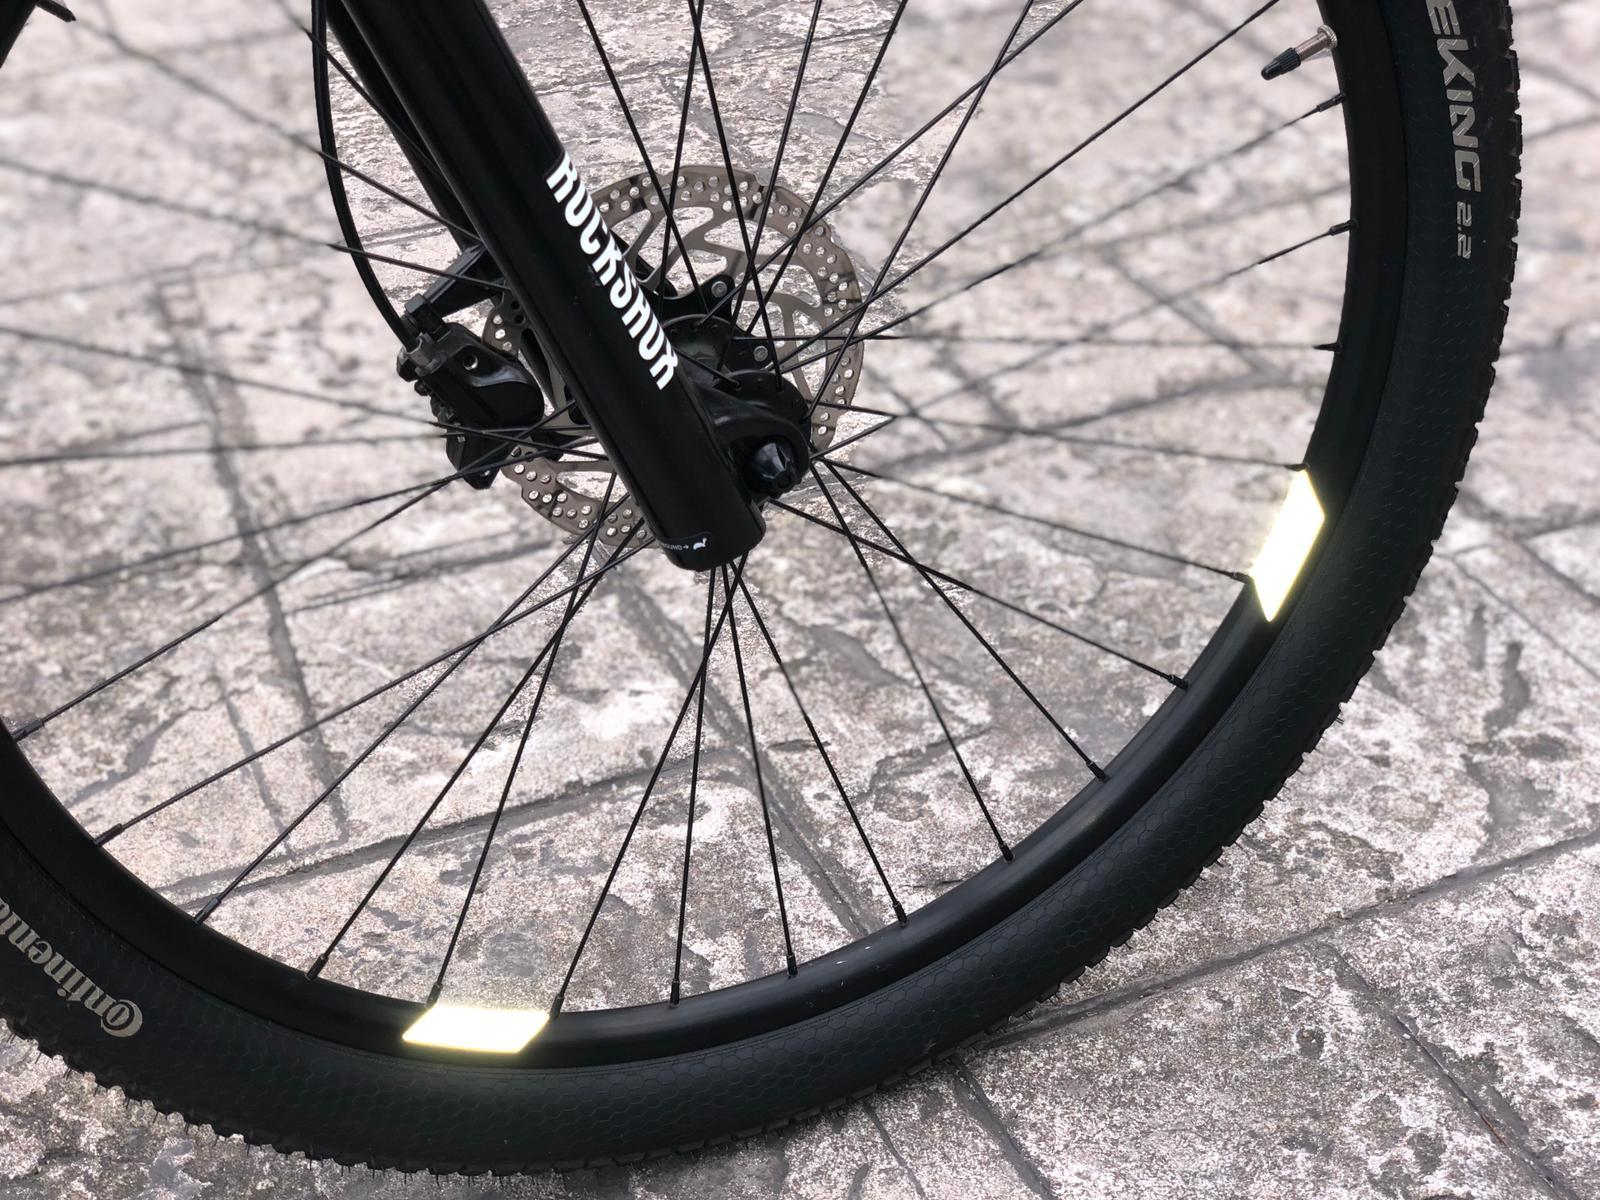 The Beam Wheel Flash High Visibility Bike reflectors